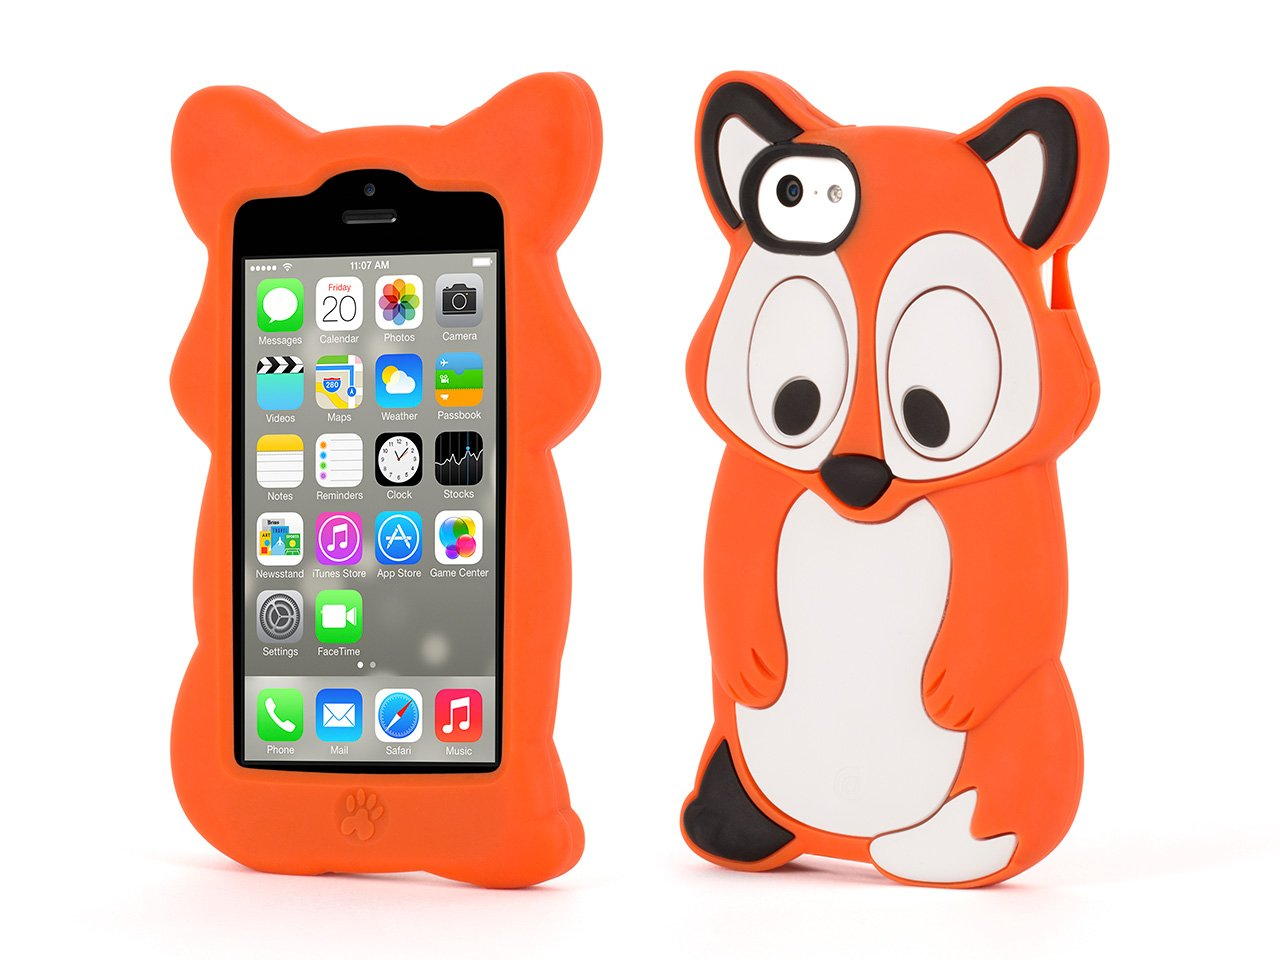 Cell phones amp accessories gt cell phone accessories gt chargers - Amazon Com Griffin Fox Kazoo Protective Animal Case For Iphone 5c Fun Animal Friends For Iphone 5c Cell Phones Accessories